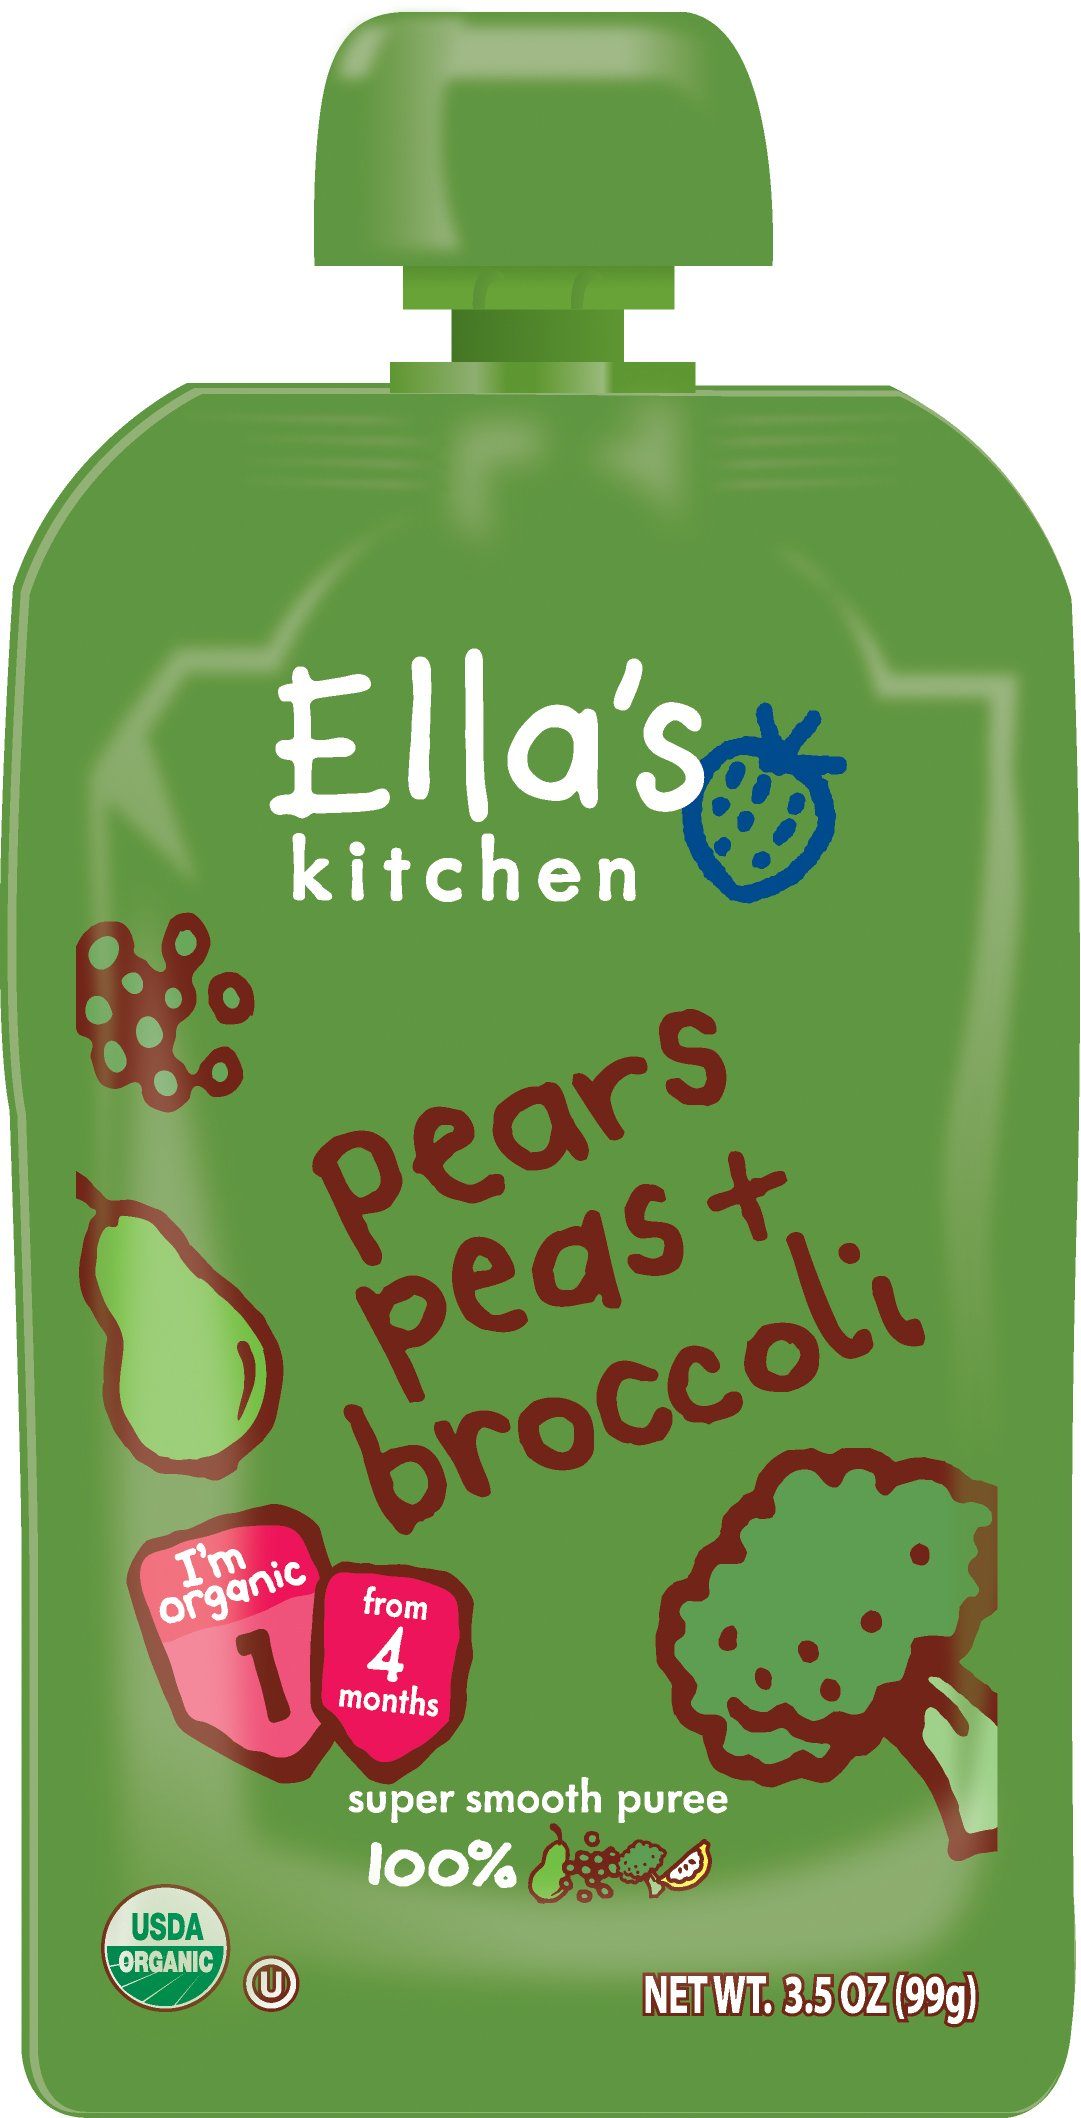 Ella's Kitchen Organic Stage 1, Pears Peas + Broccoli, 3.5 Ounce (Pack of 12)